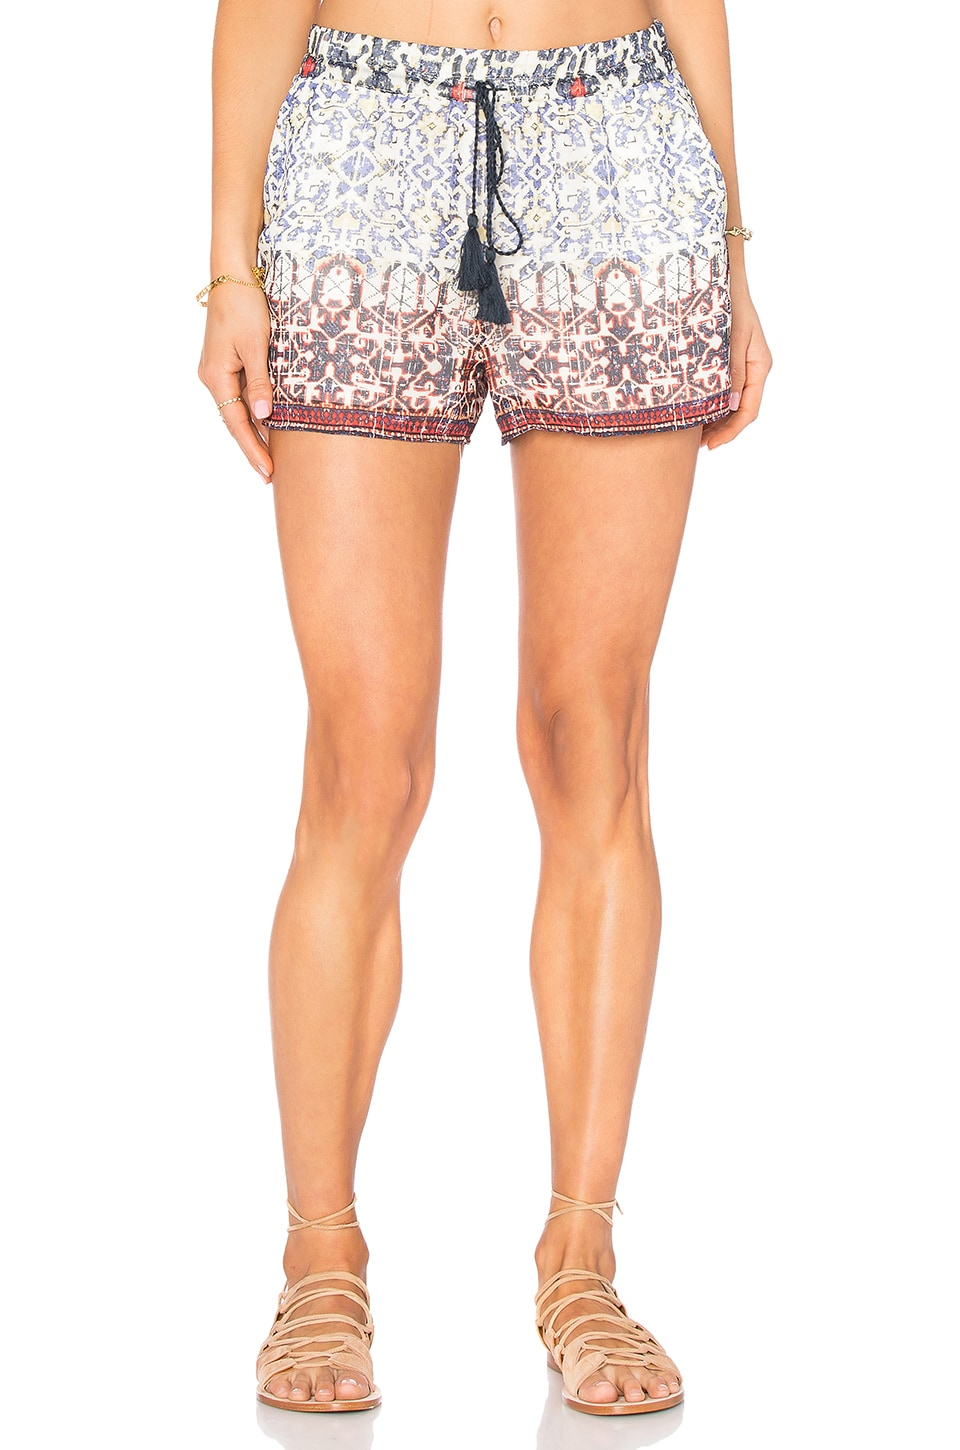 Joie Lindee Shorts in Blue Print